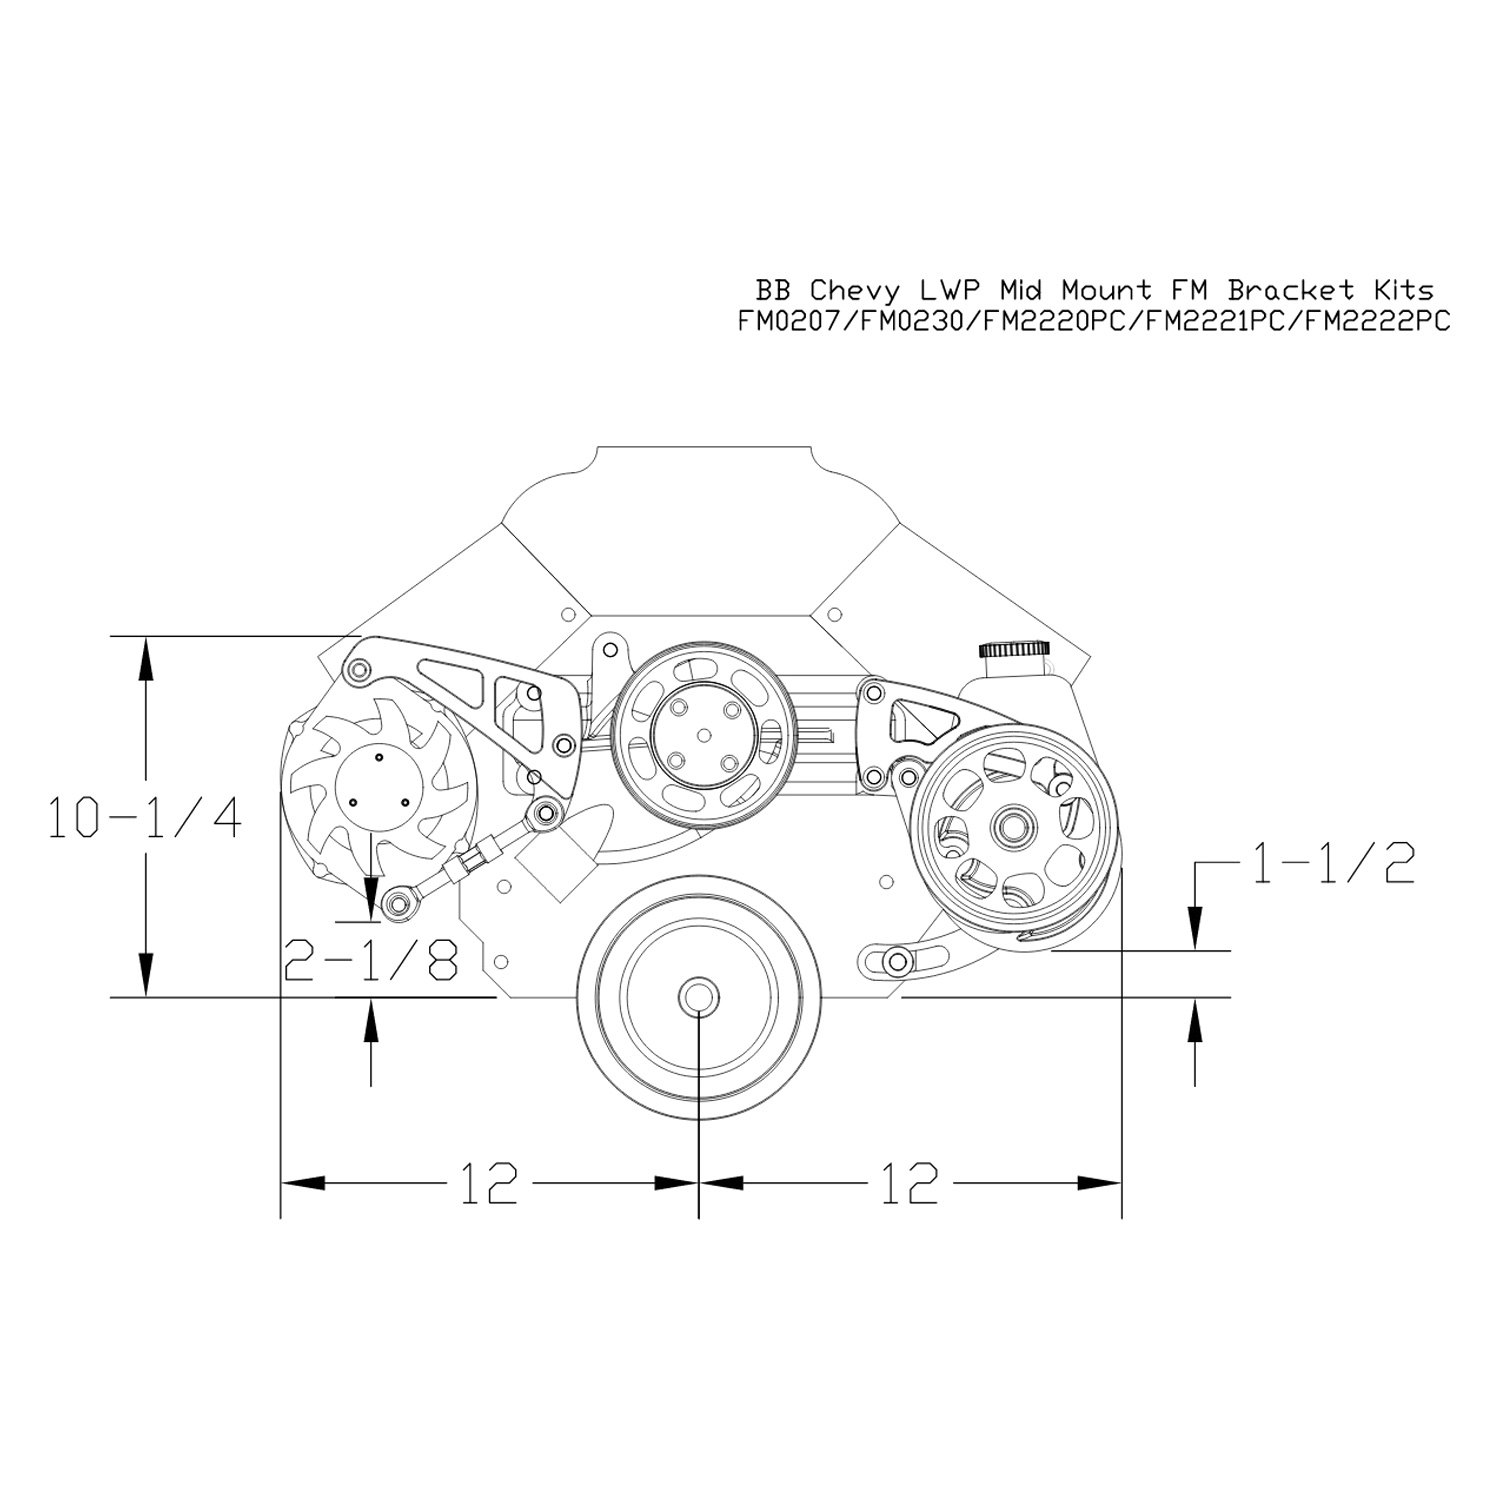 Billet Specialties® -. Alternator Braket .